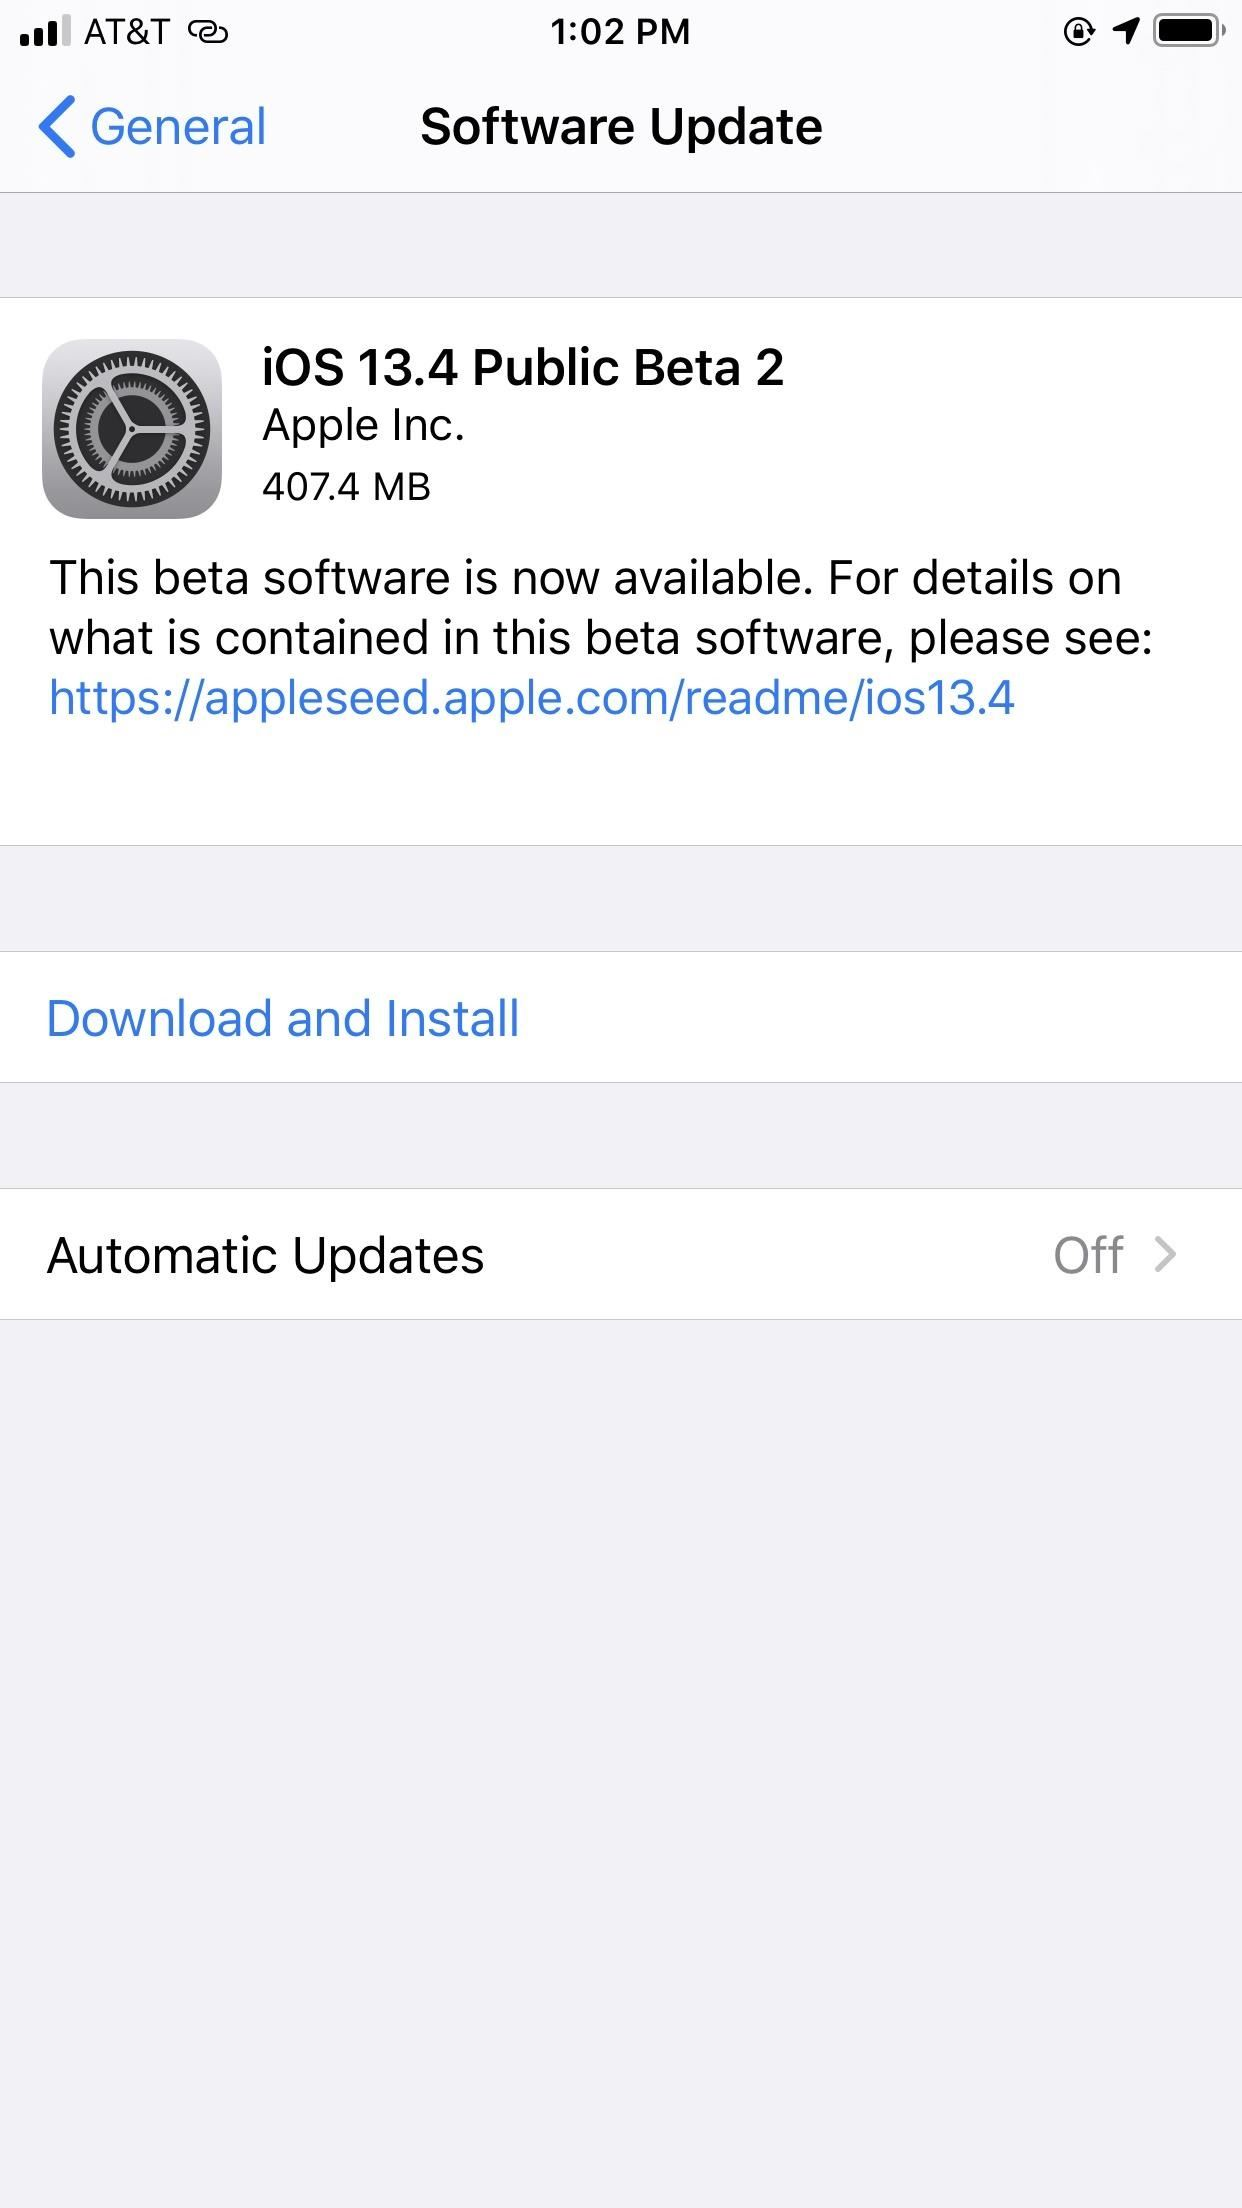 Apple releases iOS 13.4 Public Beta 2 for iPhone today